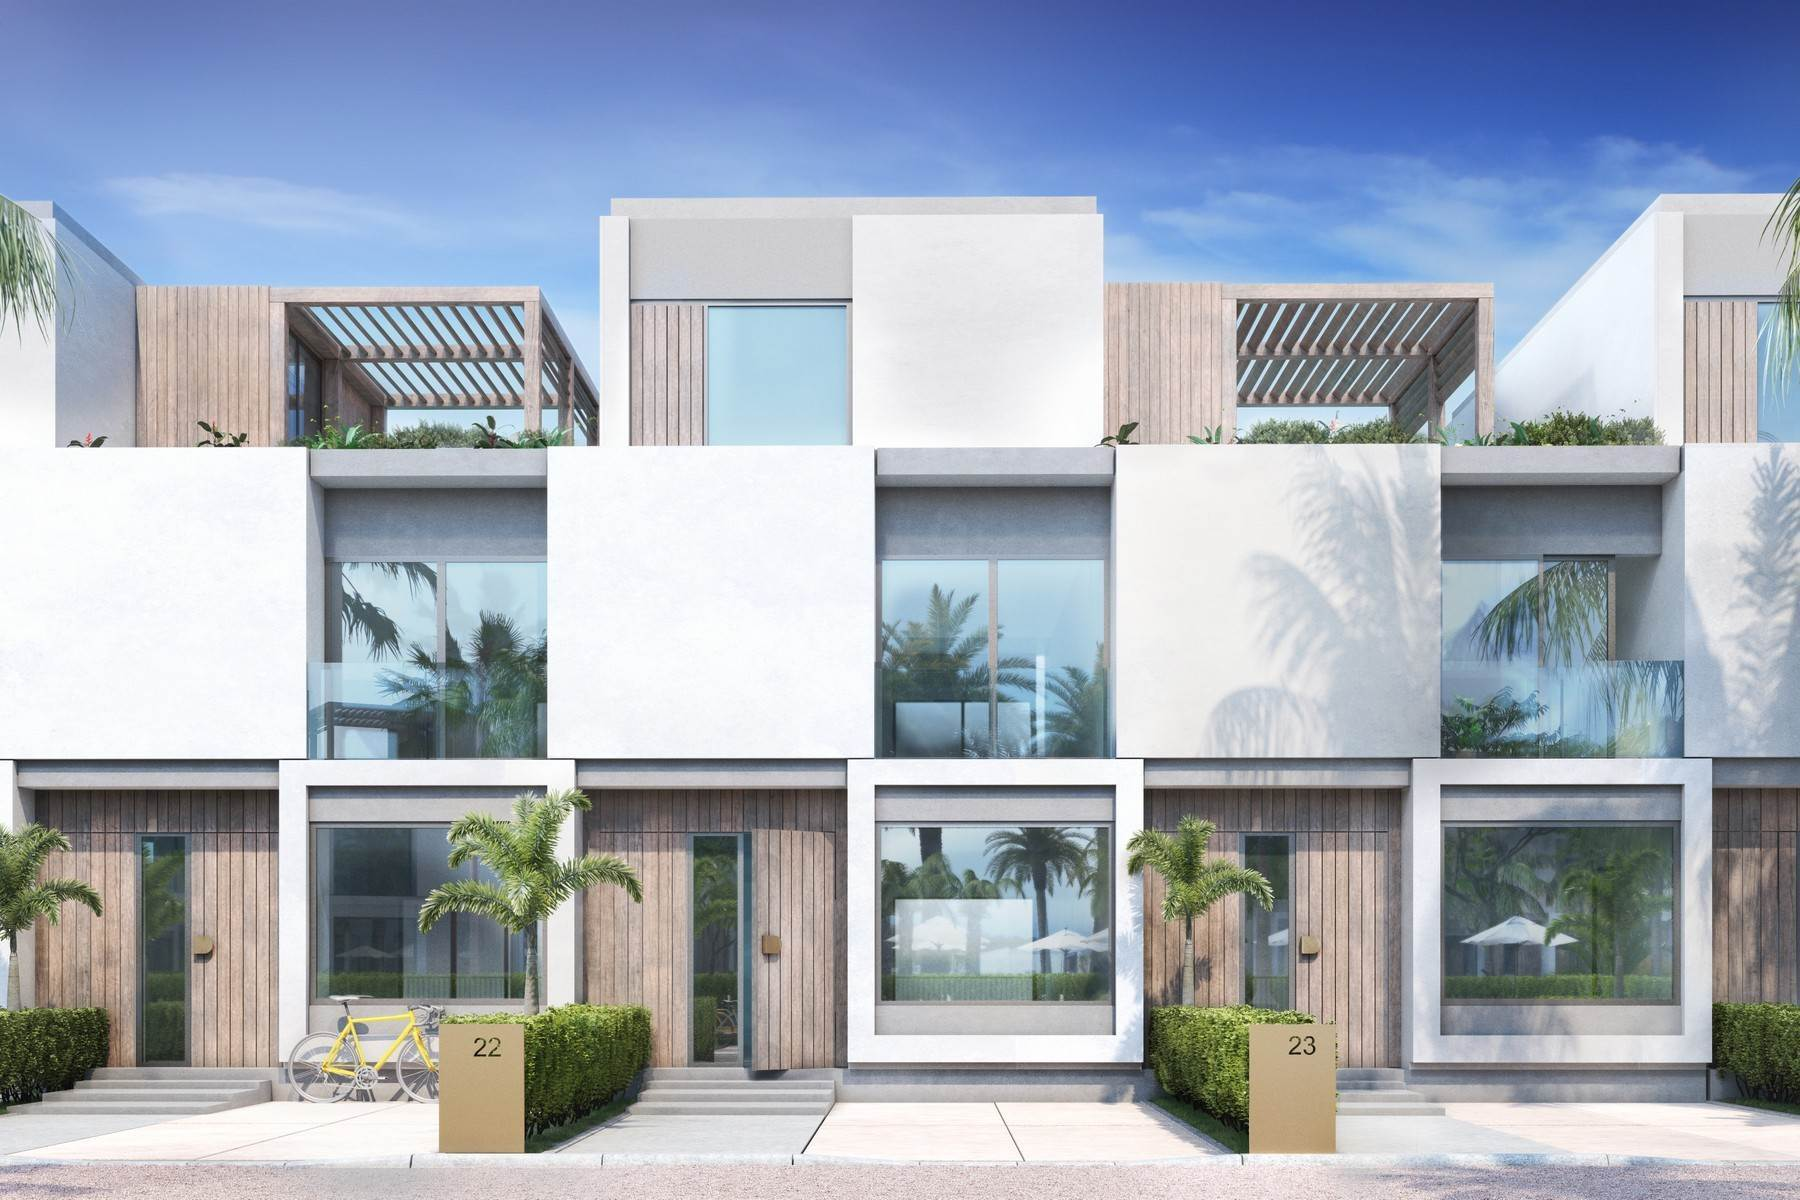 11. Condominiums for Sale at SOUTH BANK - BOATHOUSES - TWO BEDROOM PLUS ROOFTOP TERRACE - E1 South Bank, Long Bay, Providenciales Turks And Caicos Islands